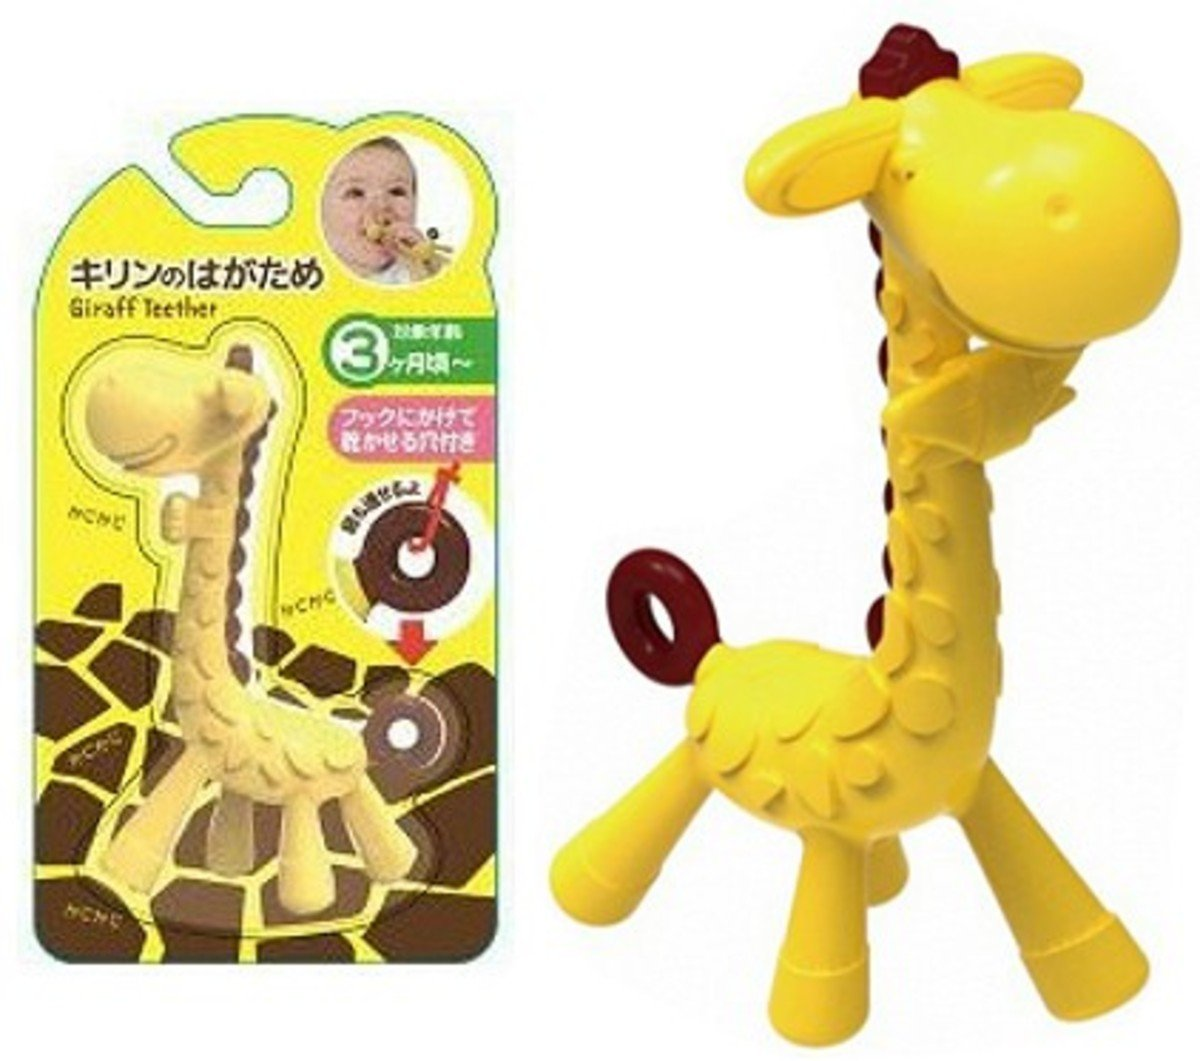 Baby Teether - Giraffe